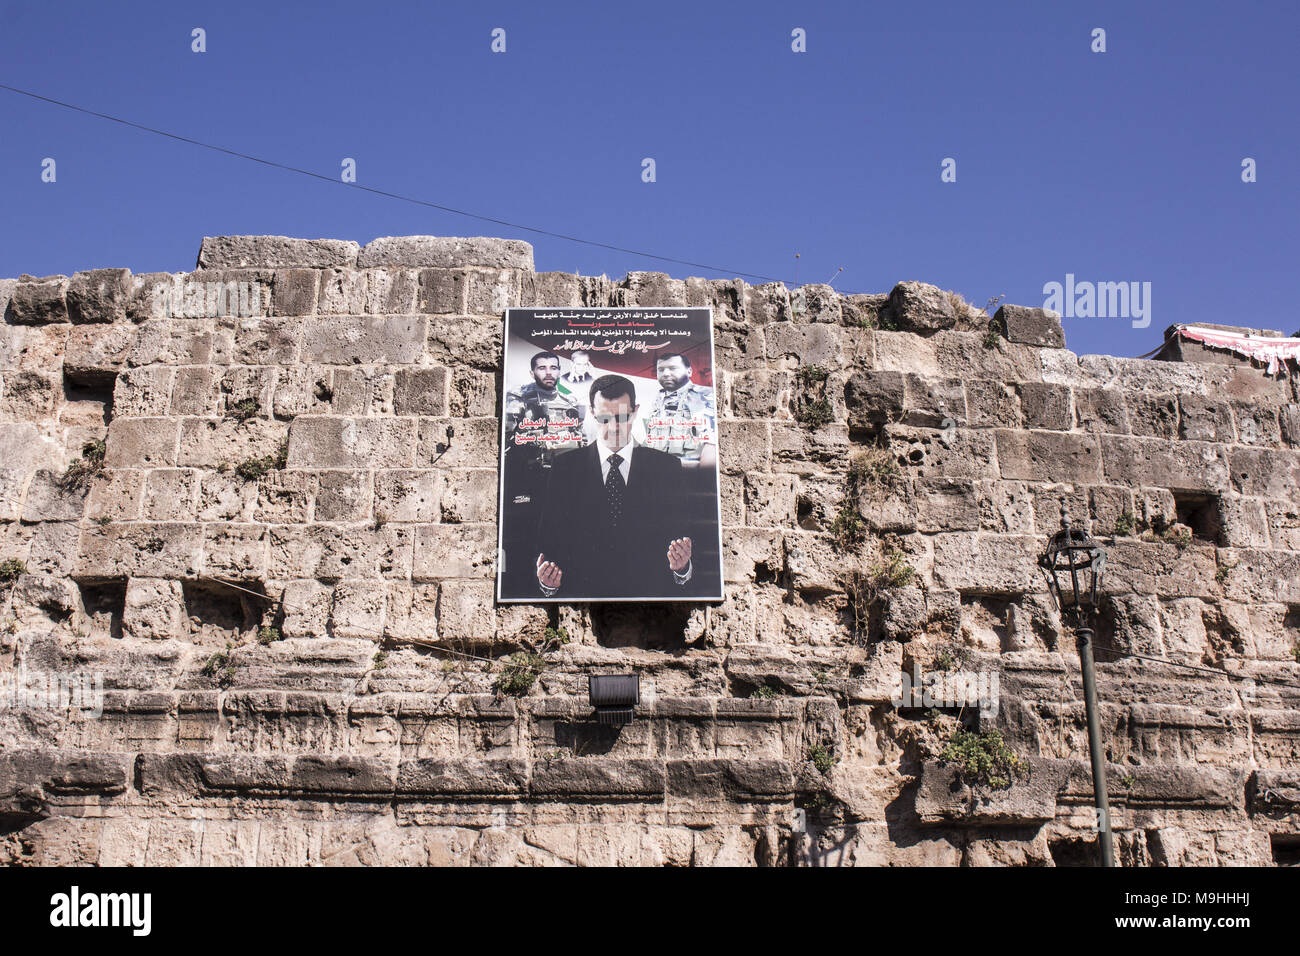 Poster bachar al Assad Palmire Syria 12/12/2015 Stock Photo